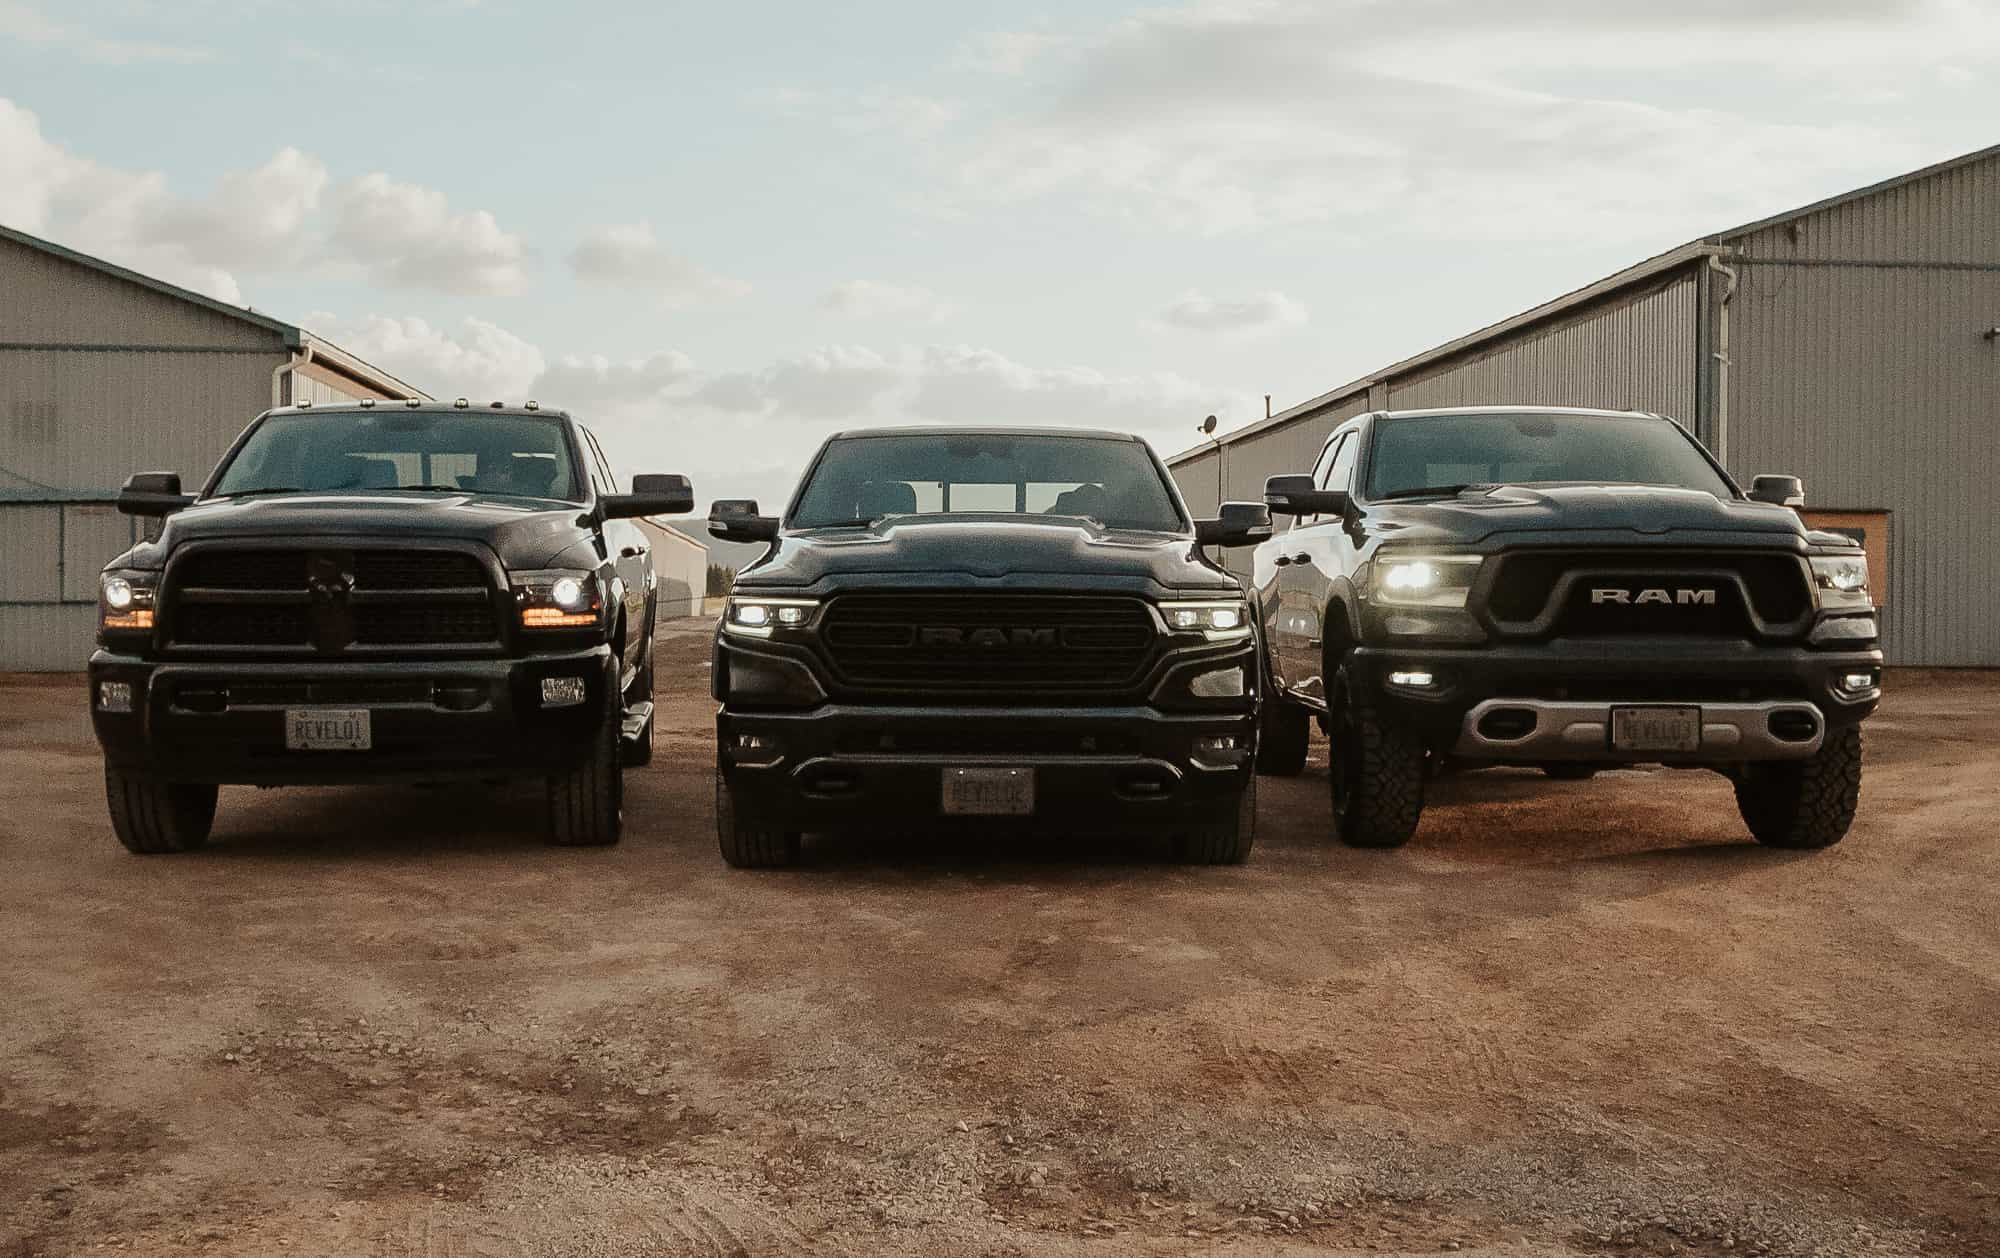 One upgraded Ram 2500 diesel truck on the left, one lowered Ram 1500 limited truck in the center, and one upgraded Ram 1500 Rebel truck on the right, in front of a warehouse